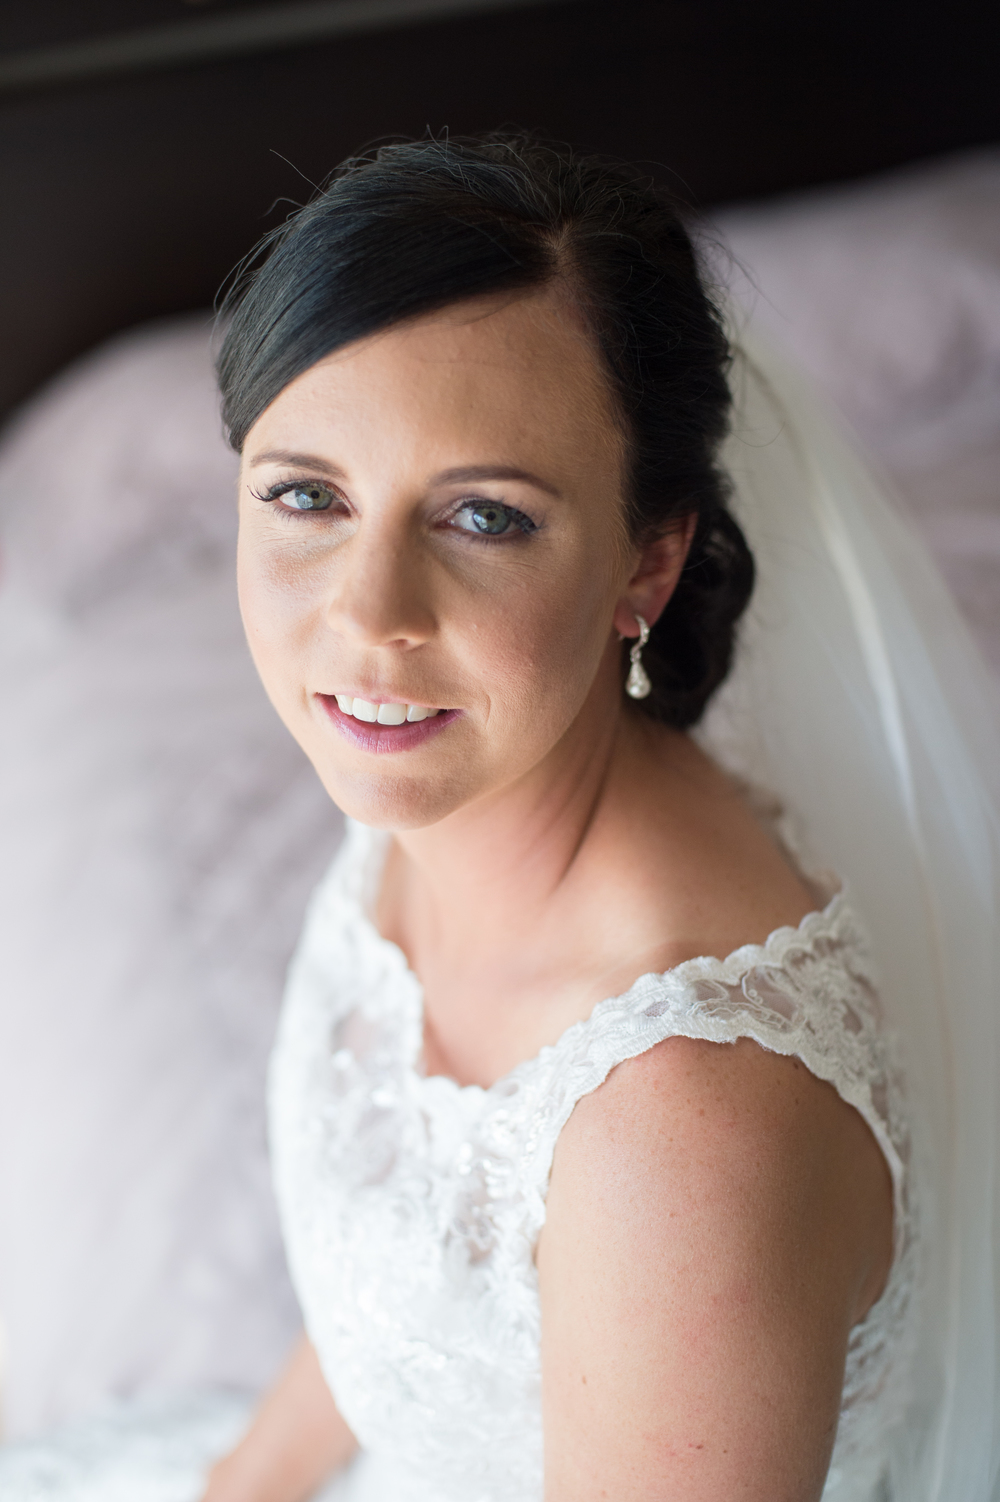 Beautiful bridal make-up | Astra Bridal Bride Megan | Photography by Laura Ridley | www.borrowedandblue.kiwi